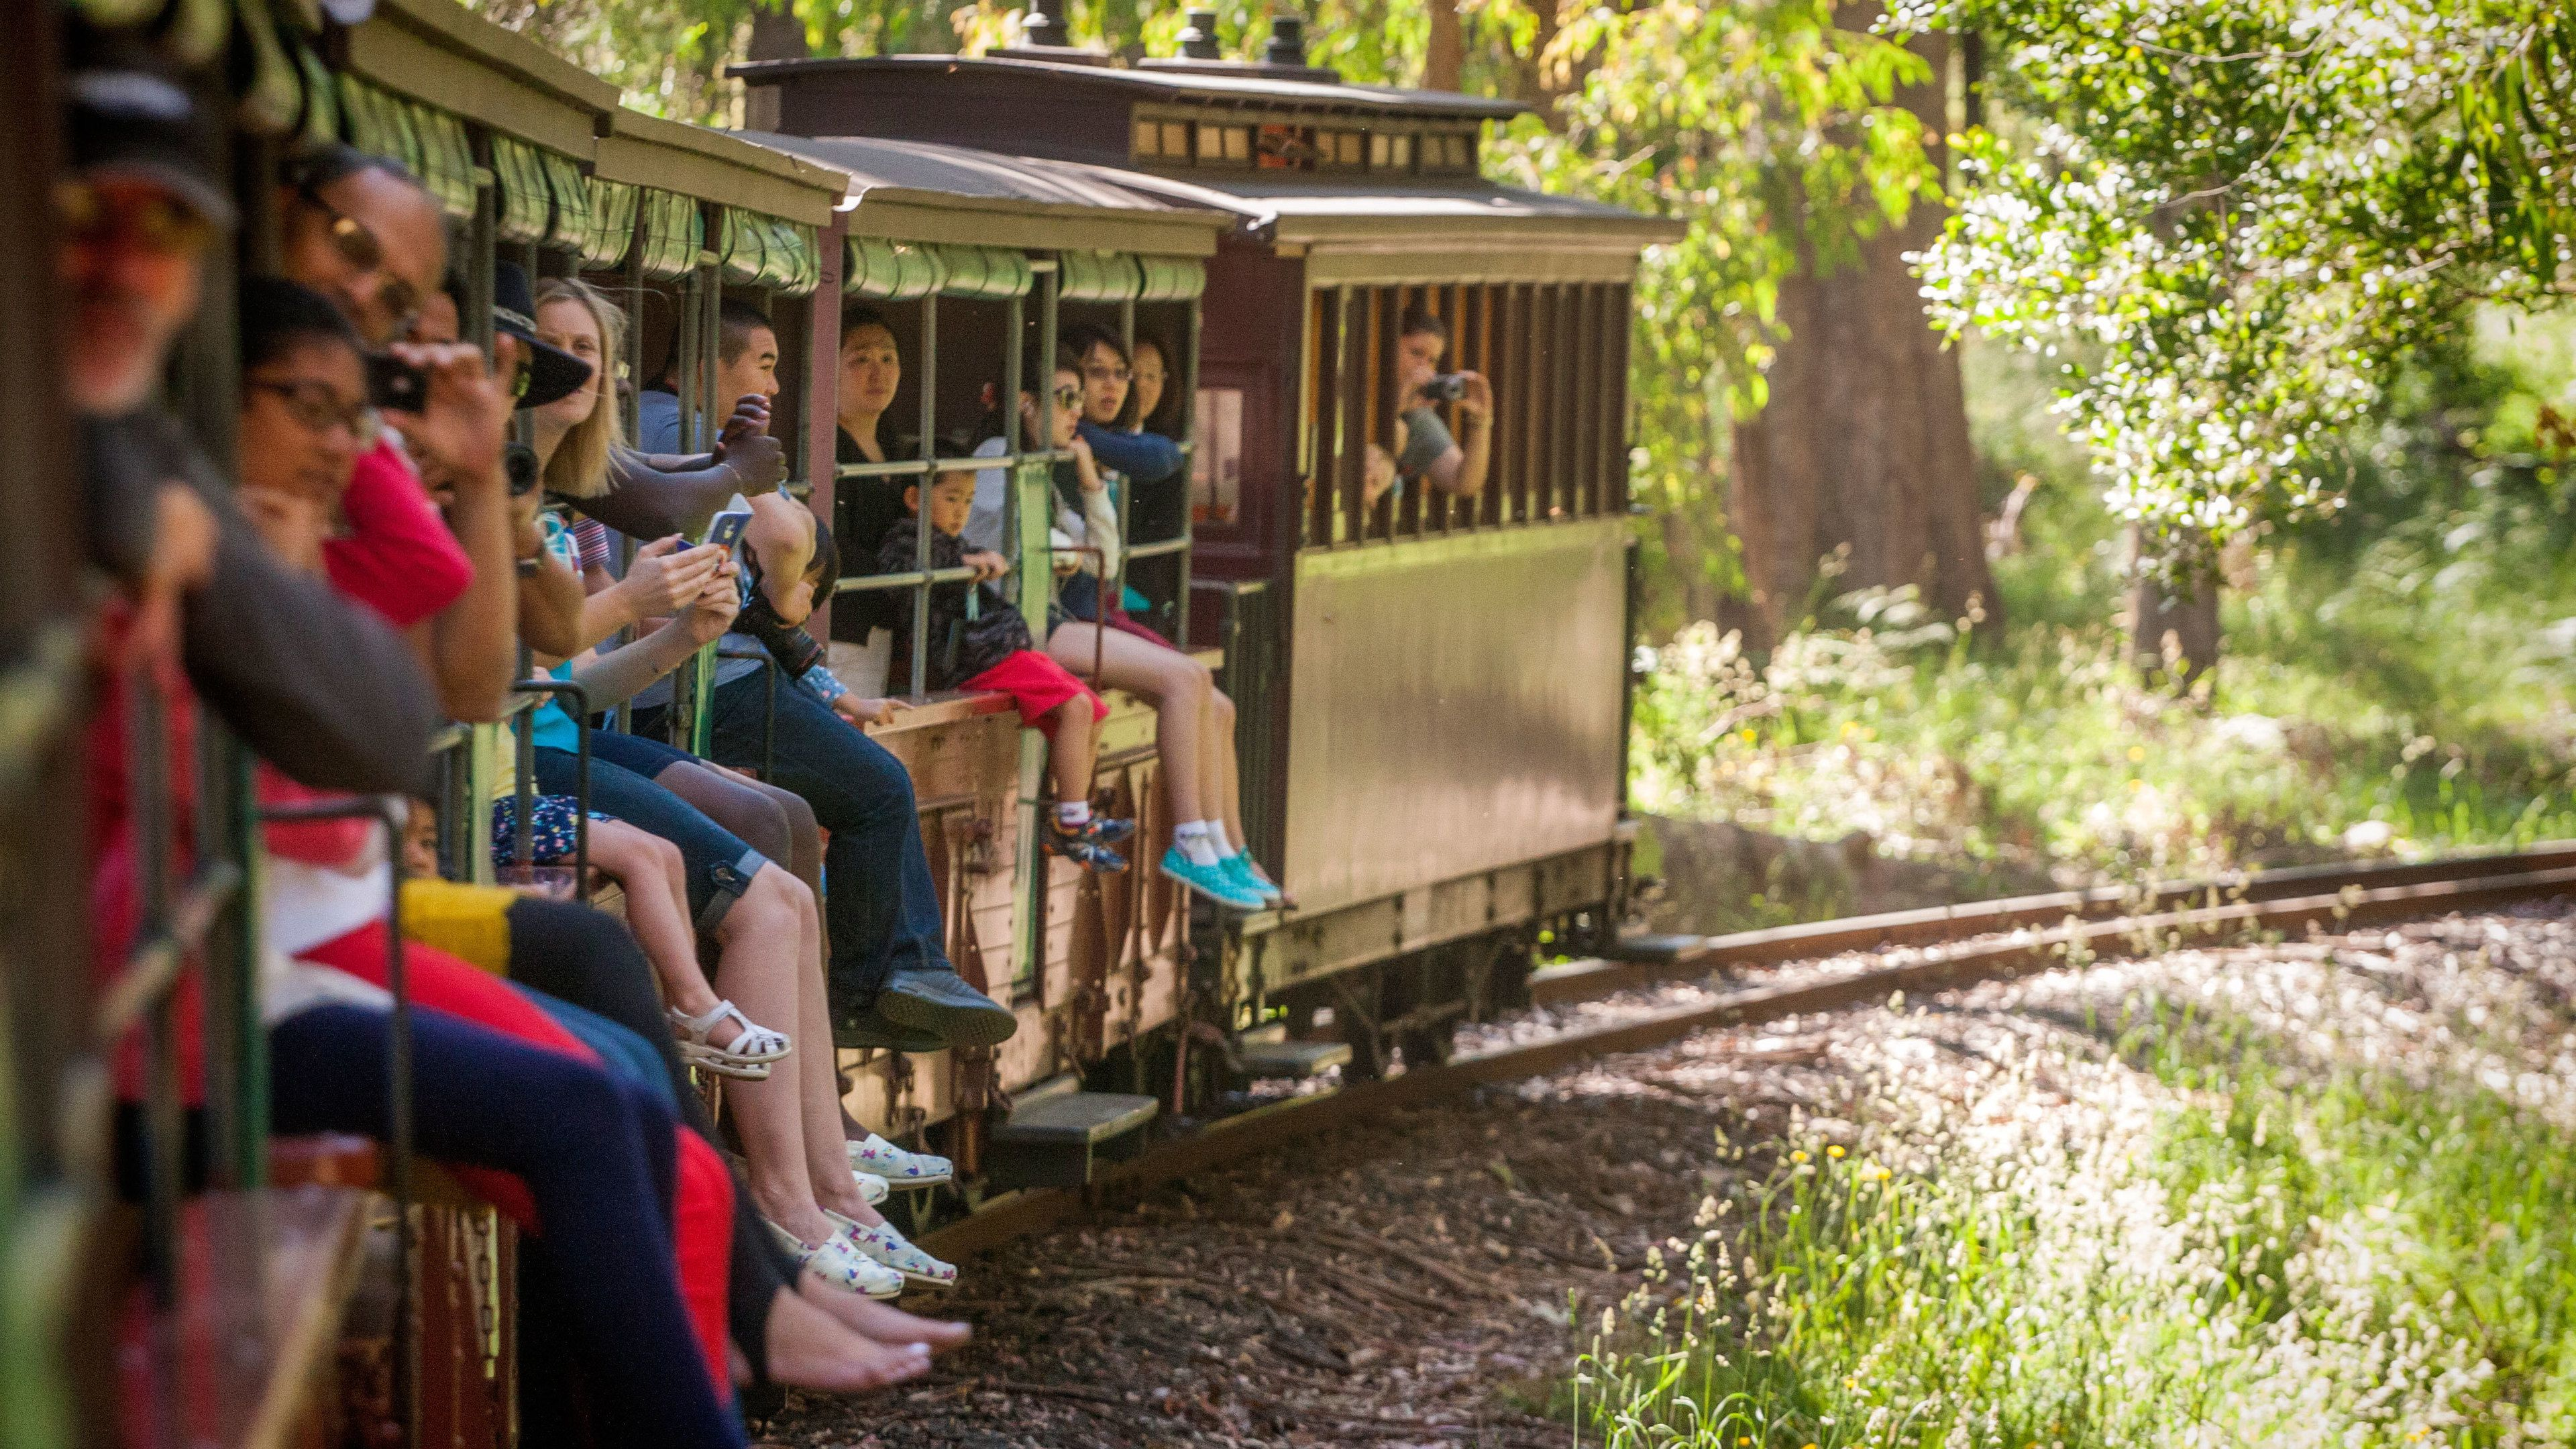 People facing outward on a train in the forest in Australia